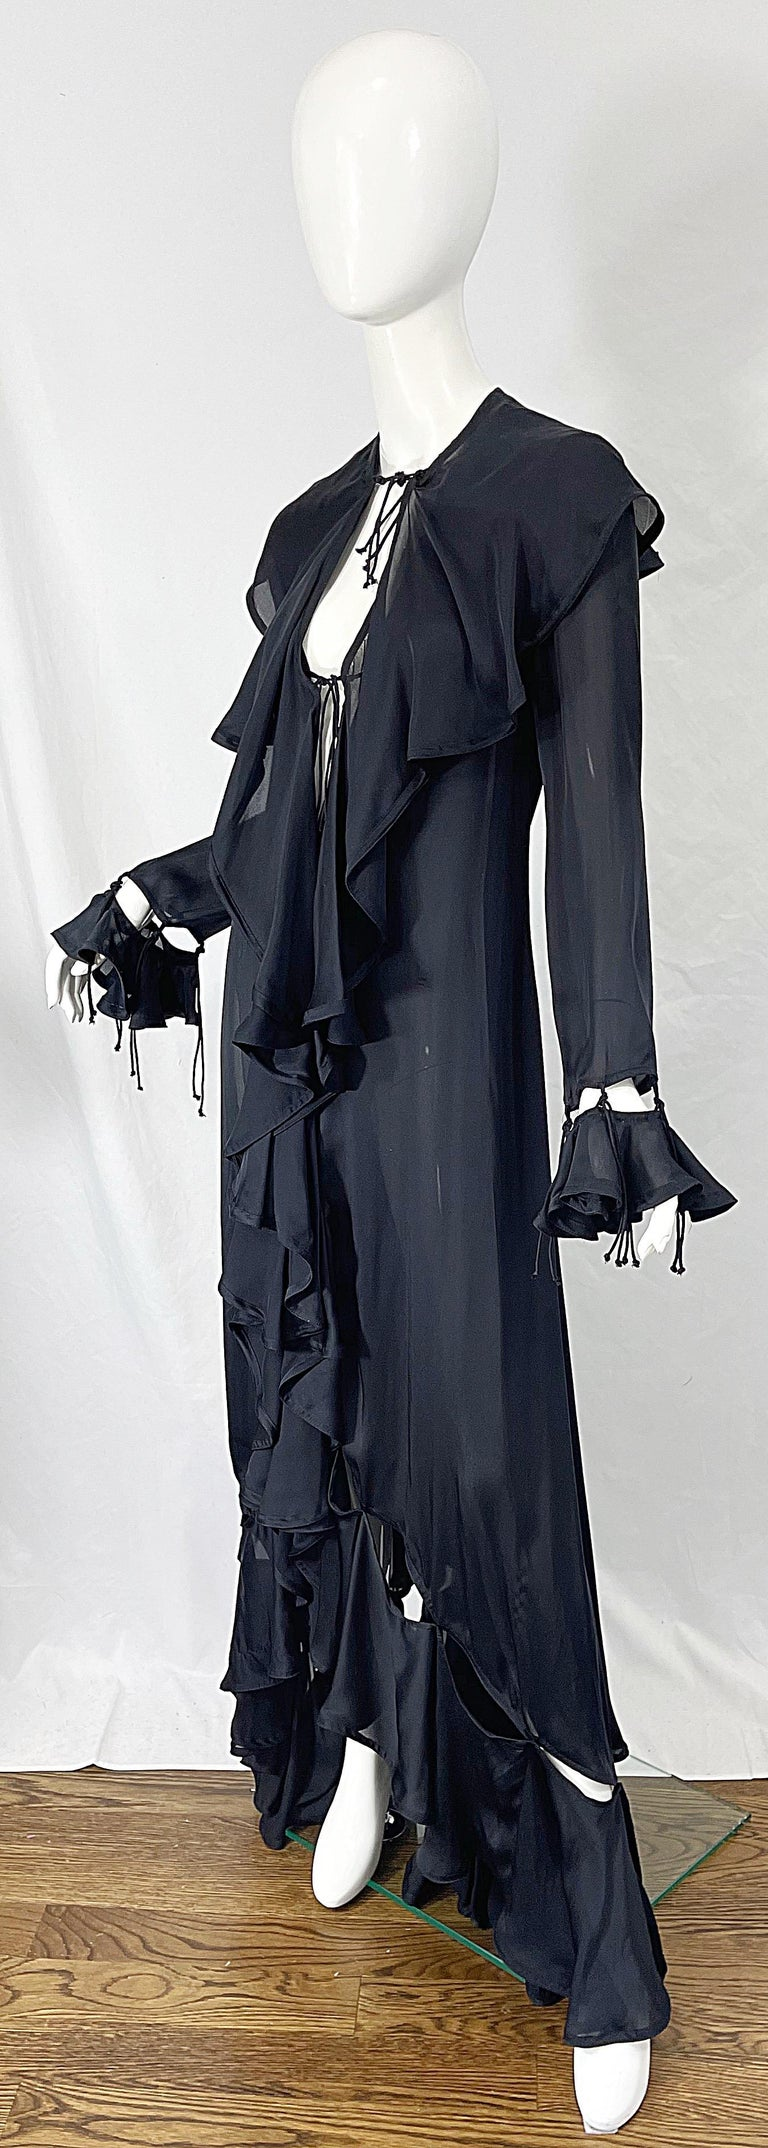 Yves Saint Laurent by Tom Ford Fall 2003 Runway Black Silk Chiffon Gown Size 38 For Sale 2